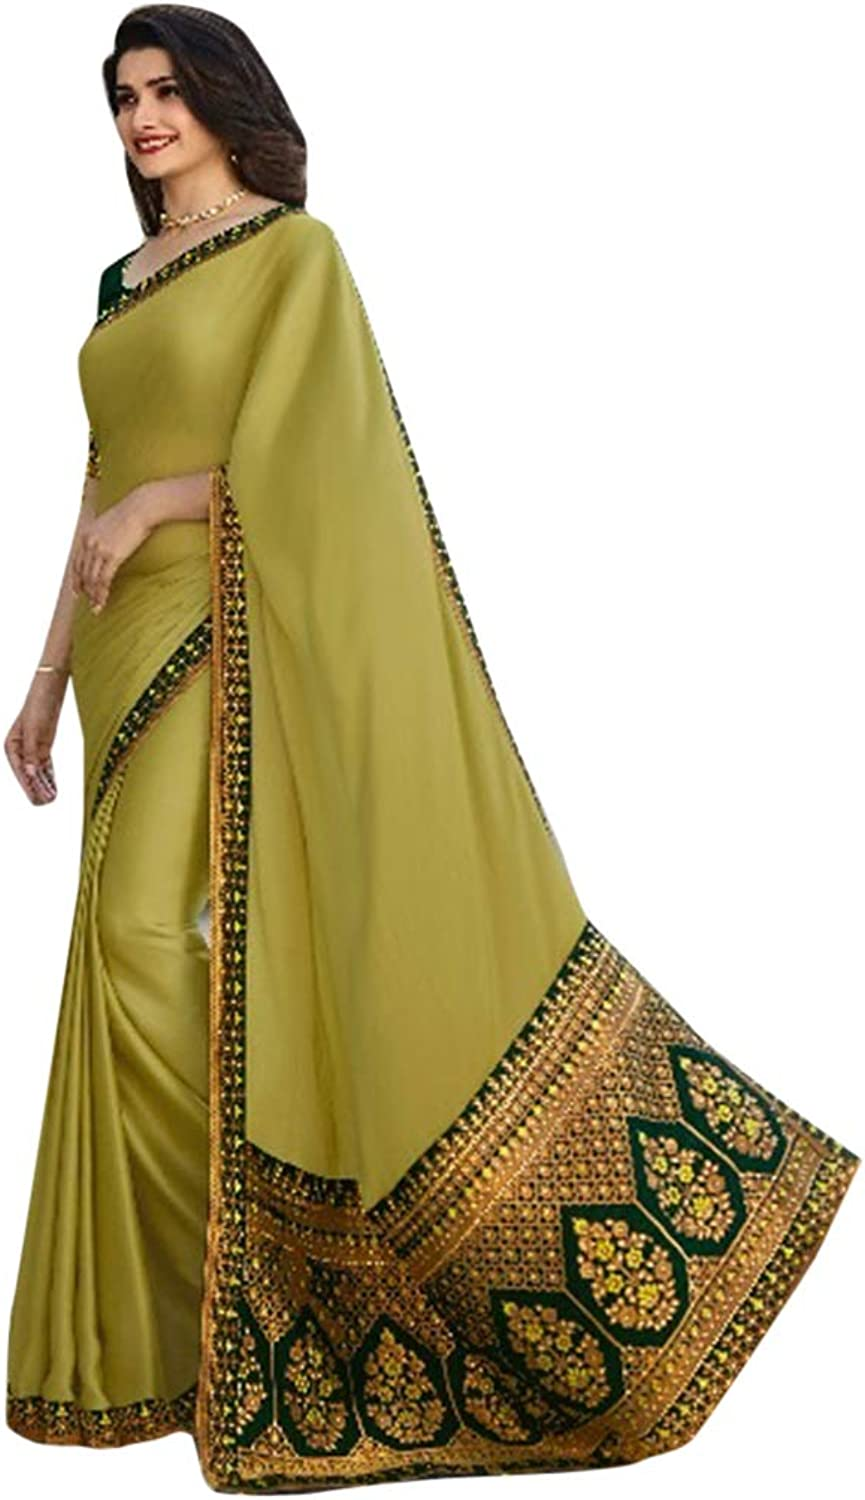 Pure gold Silk Sari Heavy Embroidery Pallu with Tassels Designer Blouse Saree Indian Women Ethnic 7258